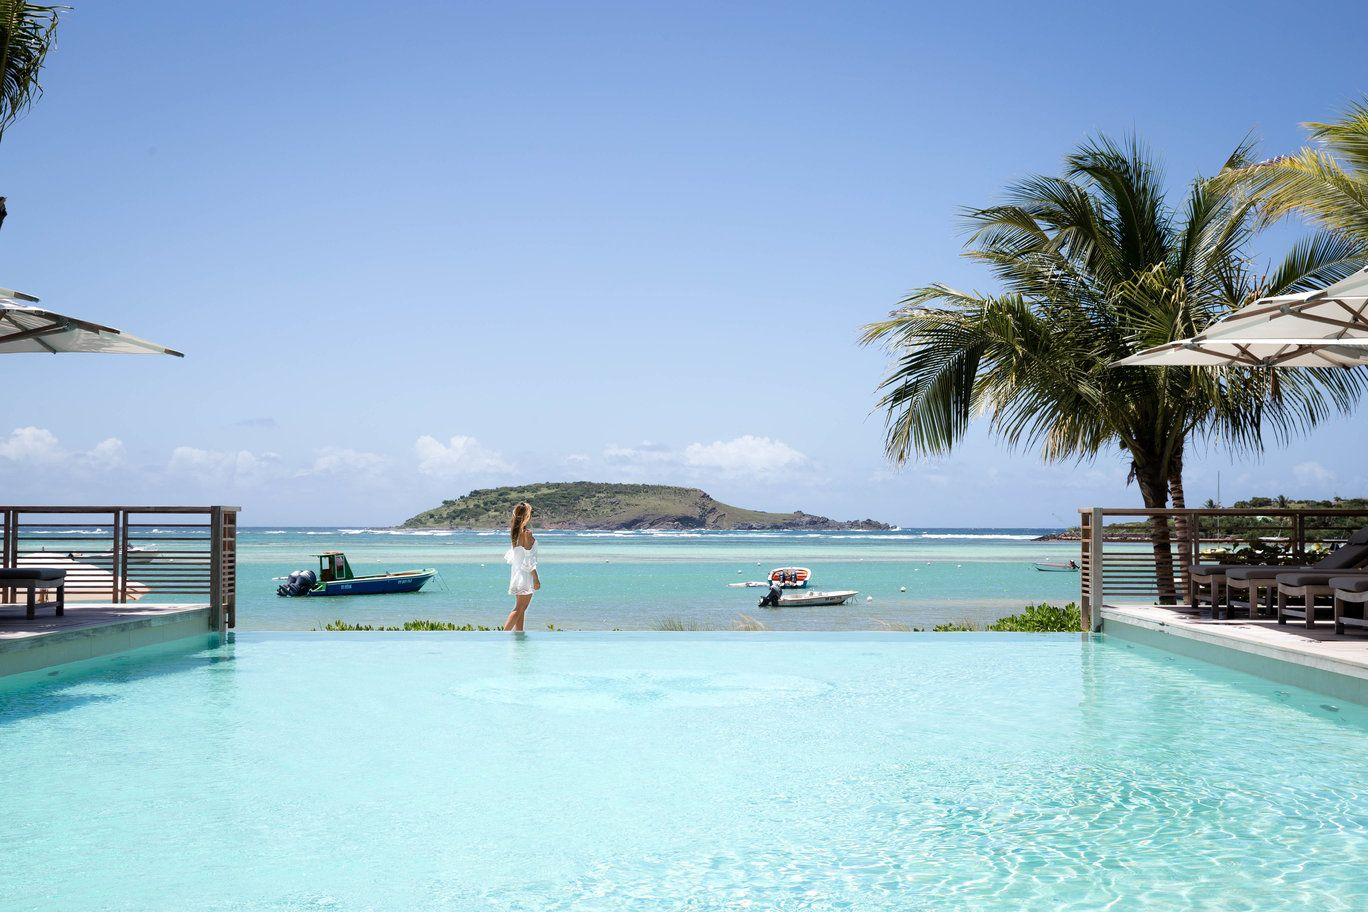 Le Barthelemy Hotel Spa Elegance Luxury In The Tropical Paradise Of St Barth